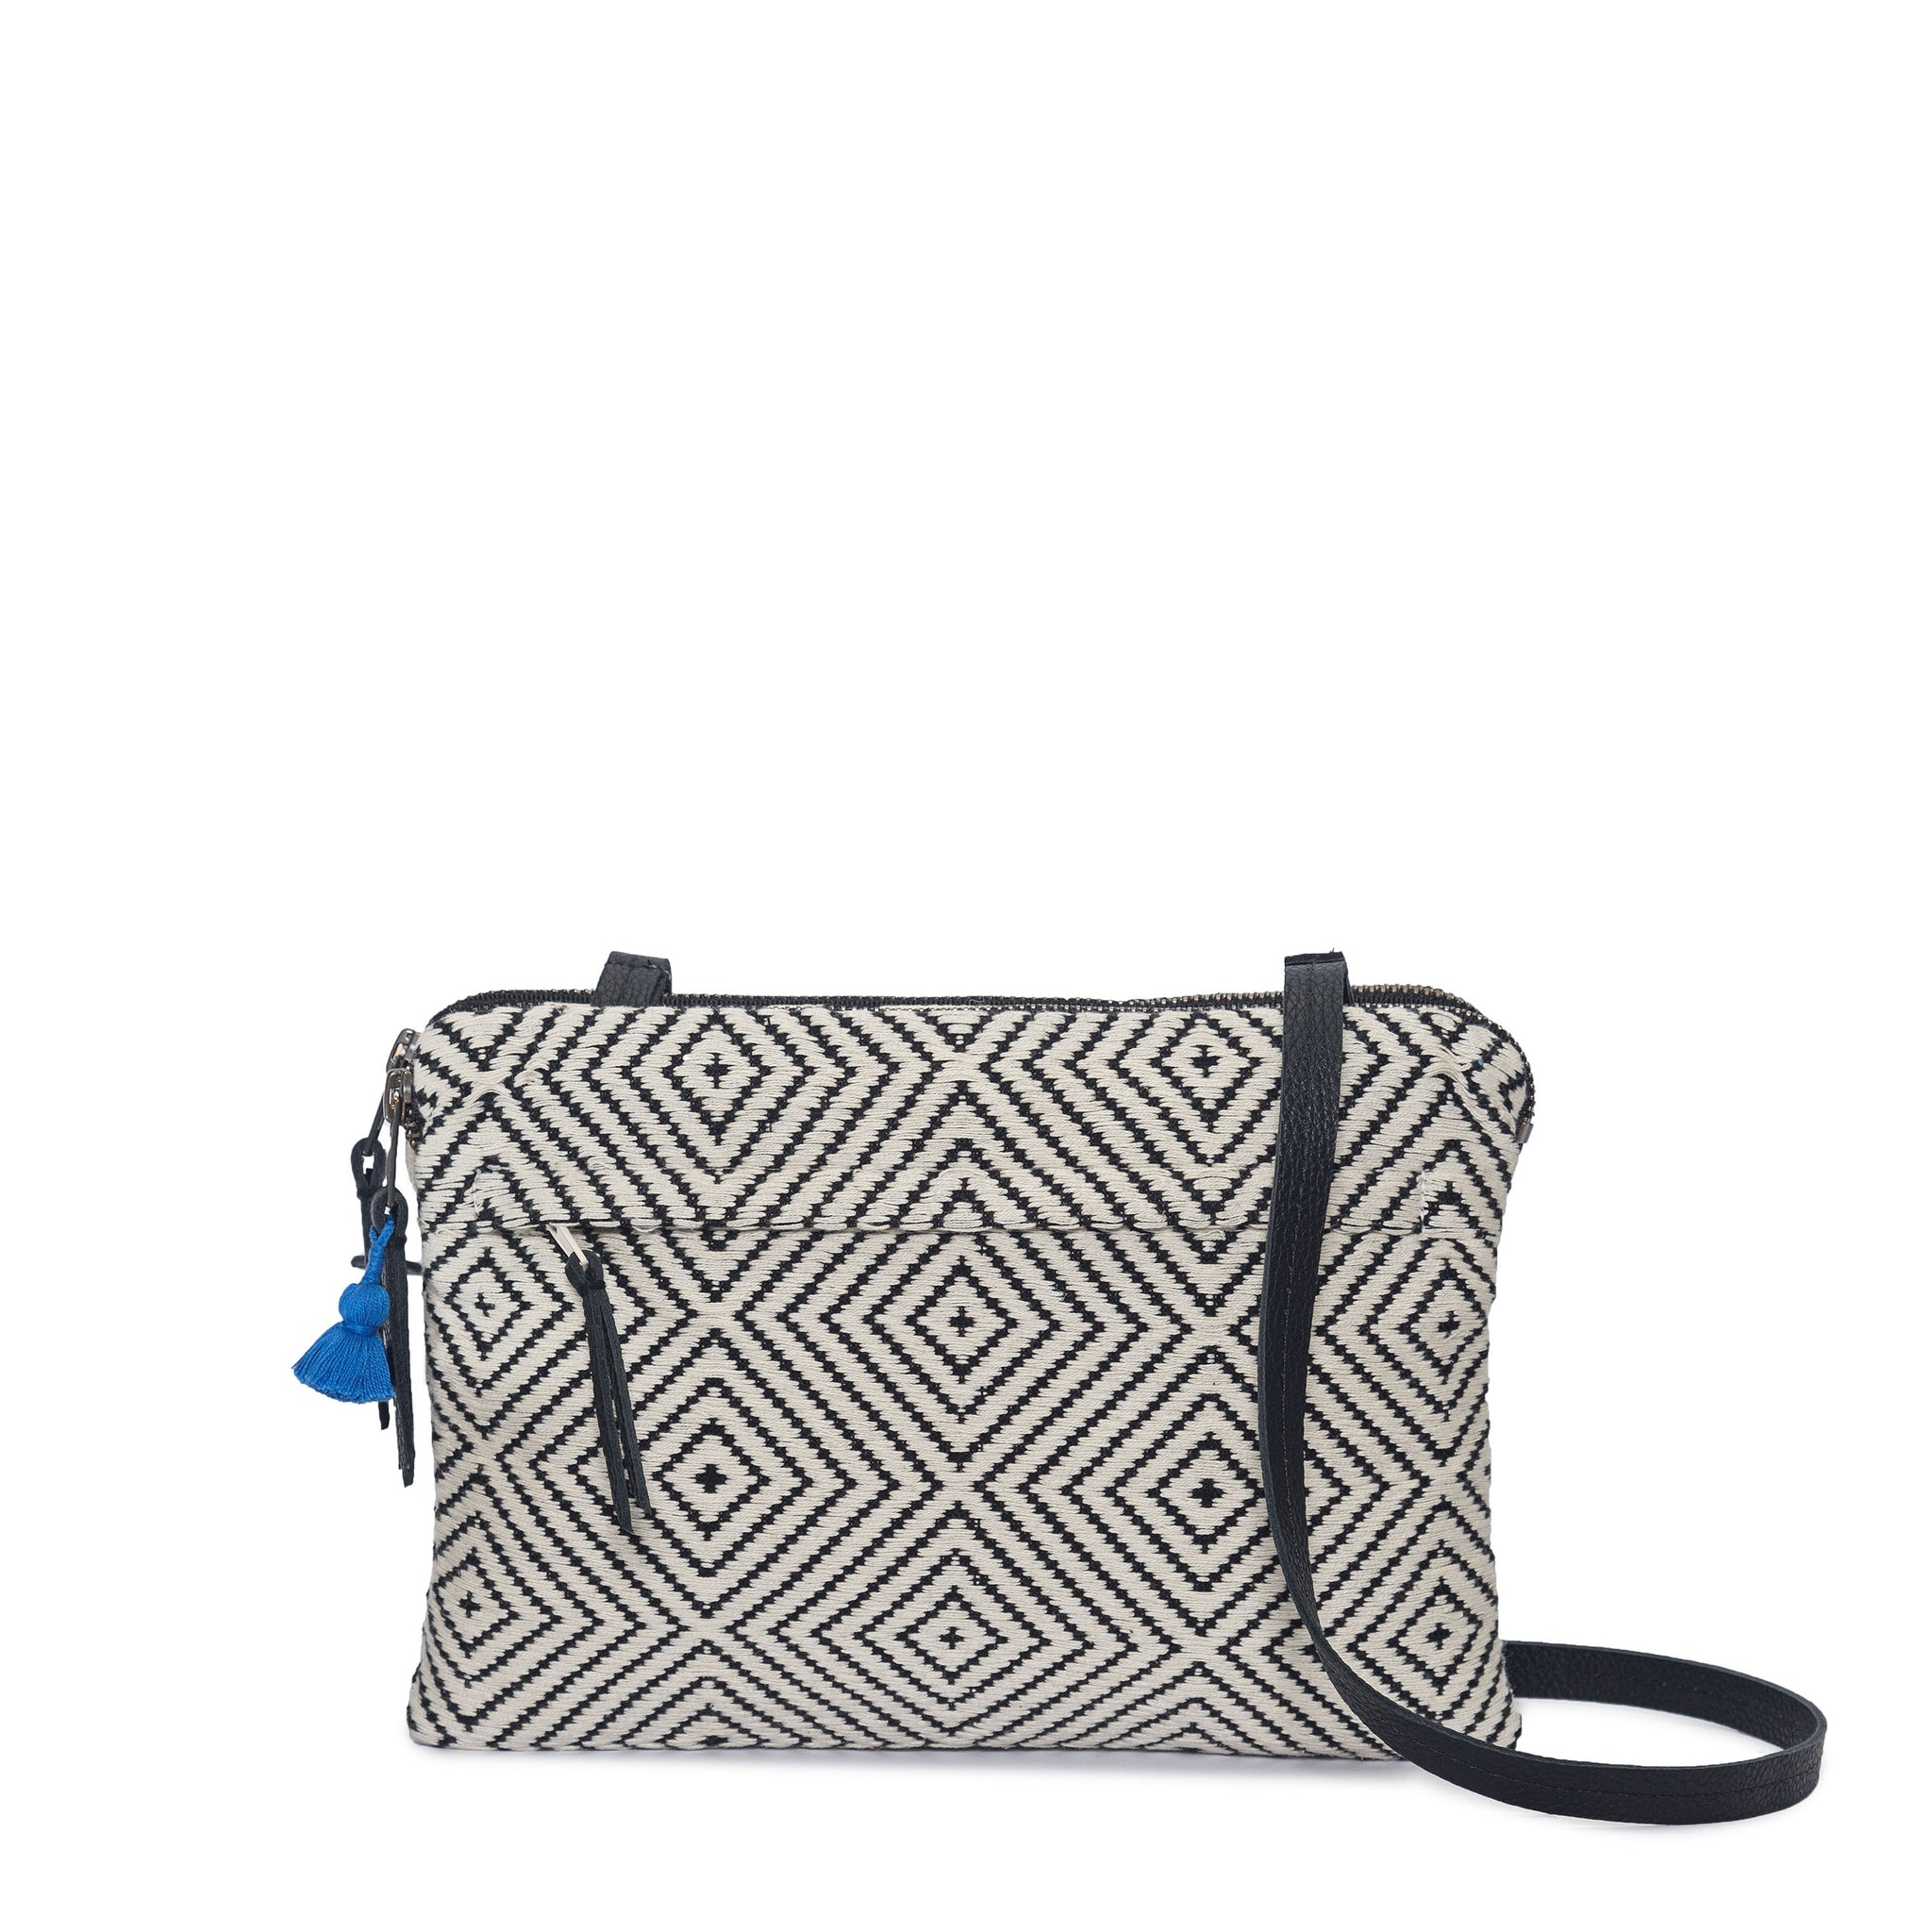 Hand woven Miriam Crossbody - Ethical Shopping at Mercado Global